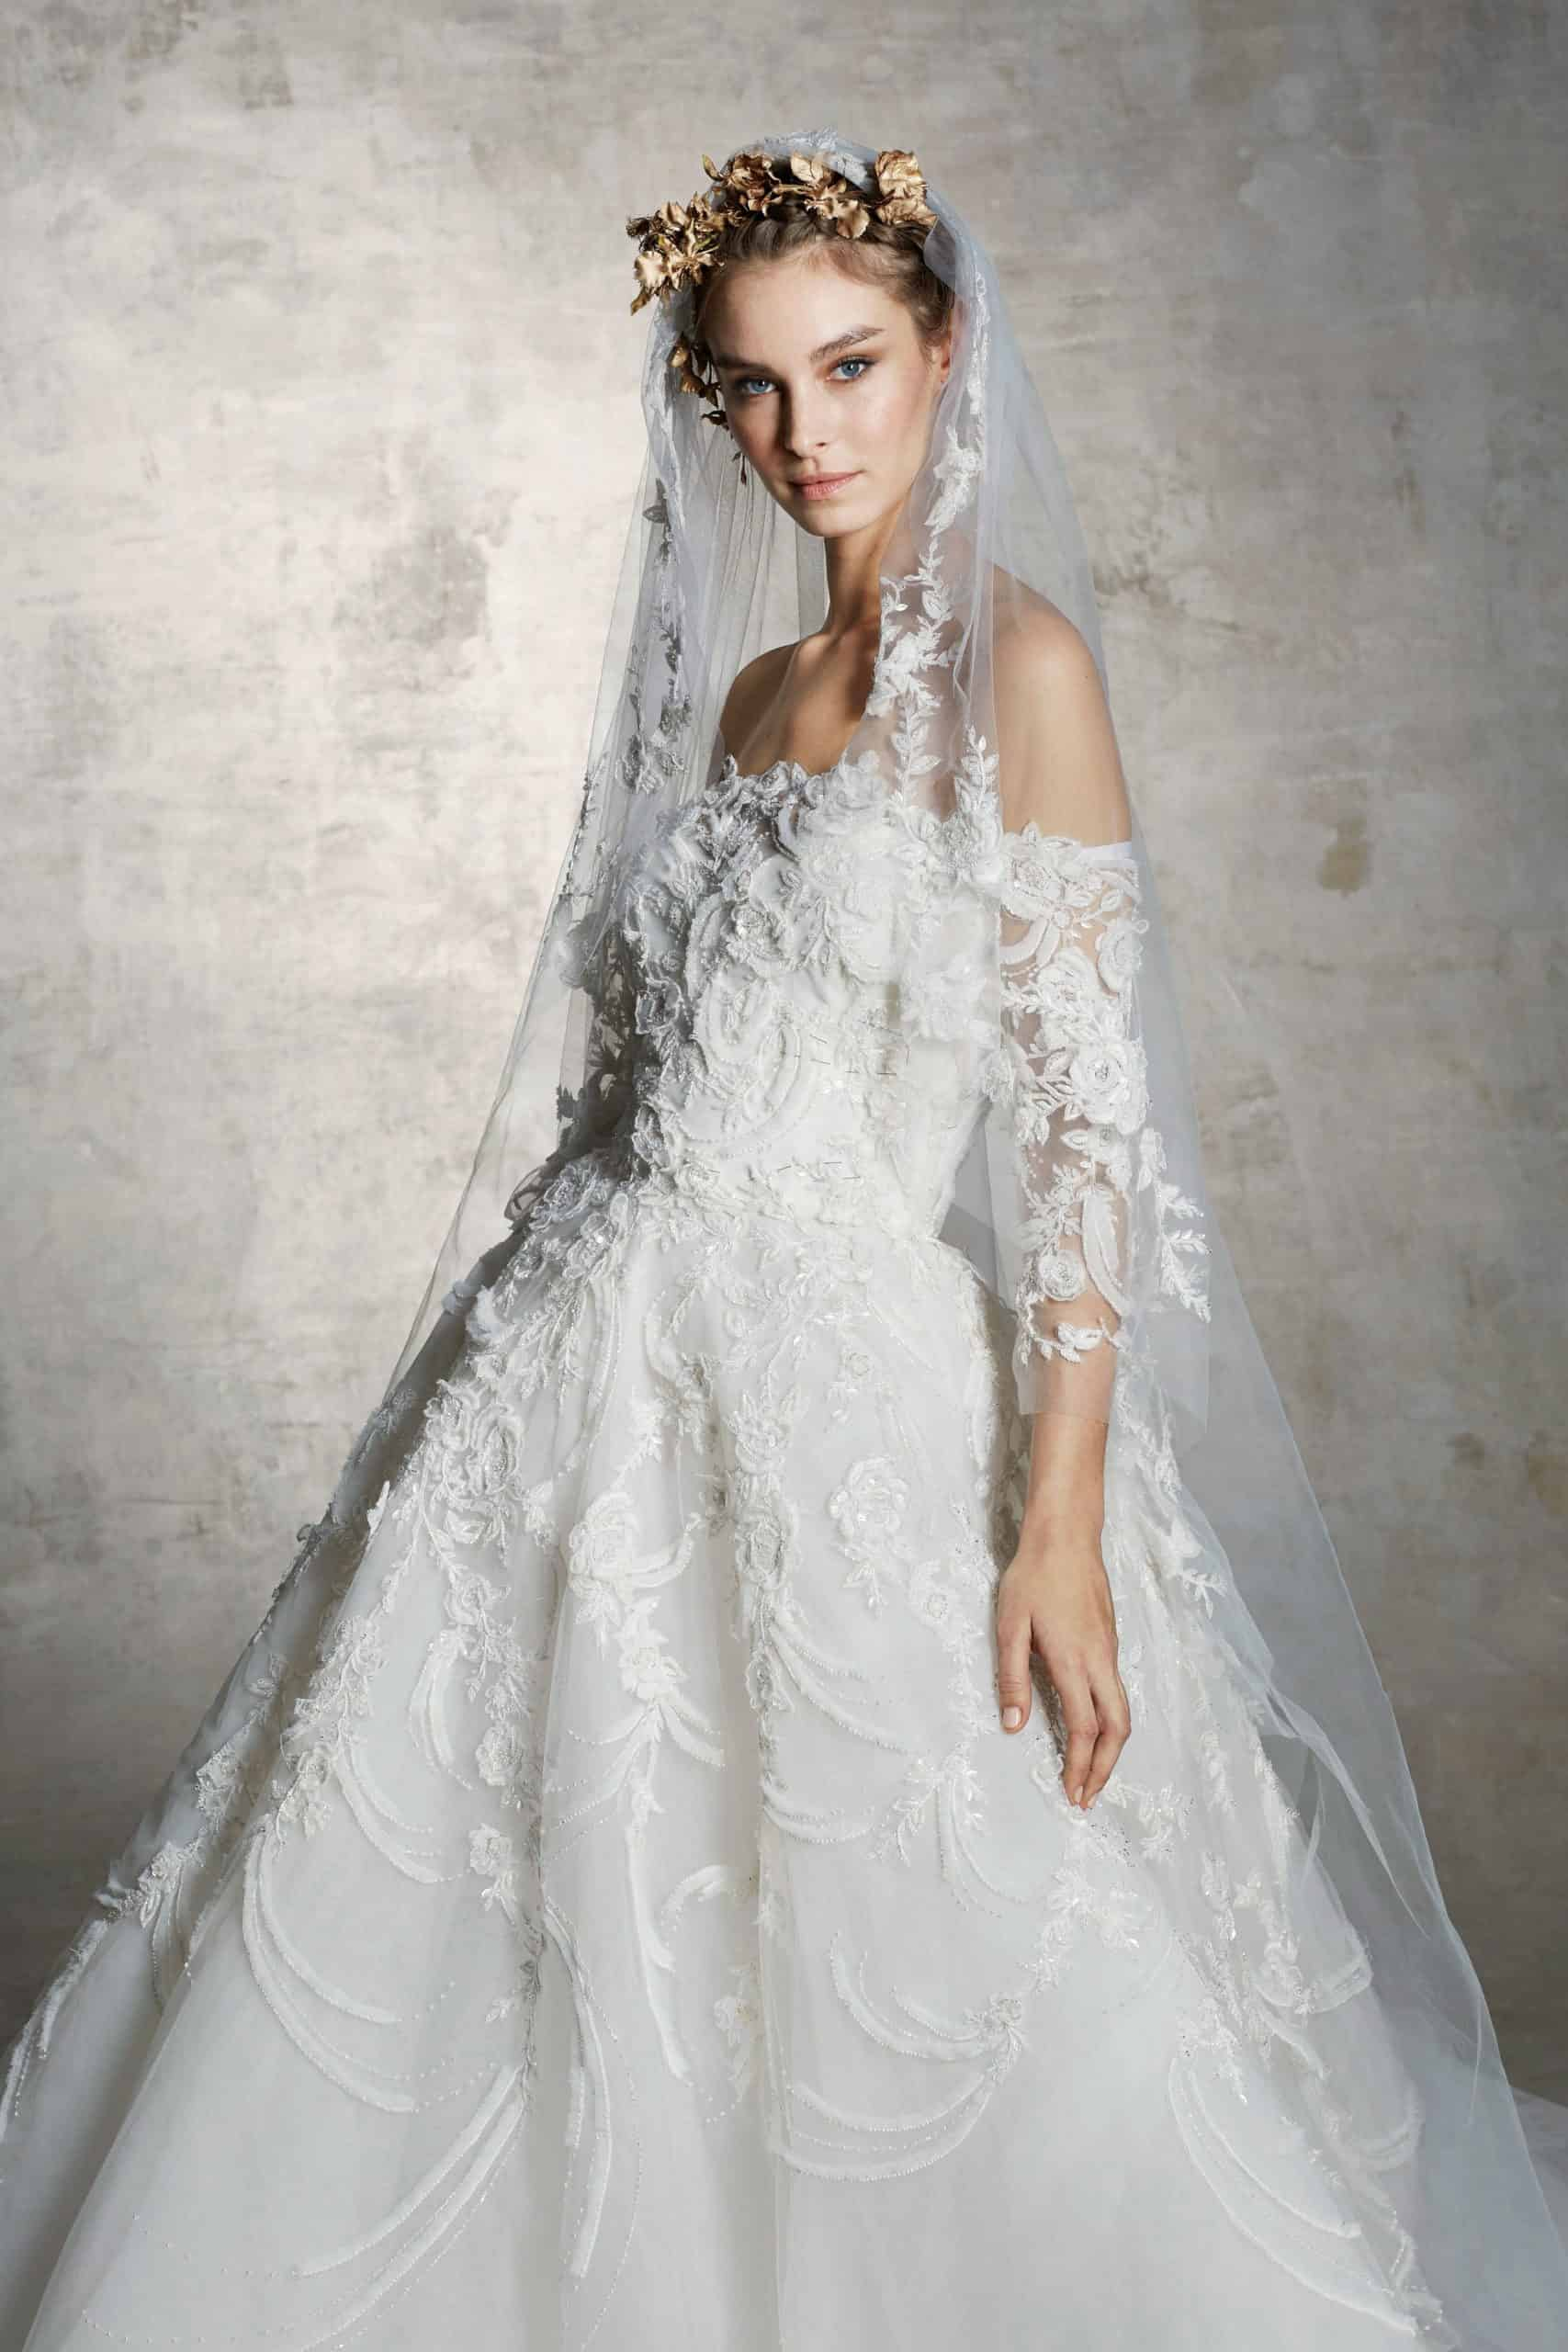 heavy lace wedding dress with a veil by Marchesa